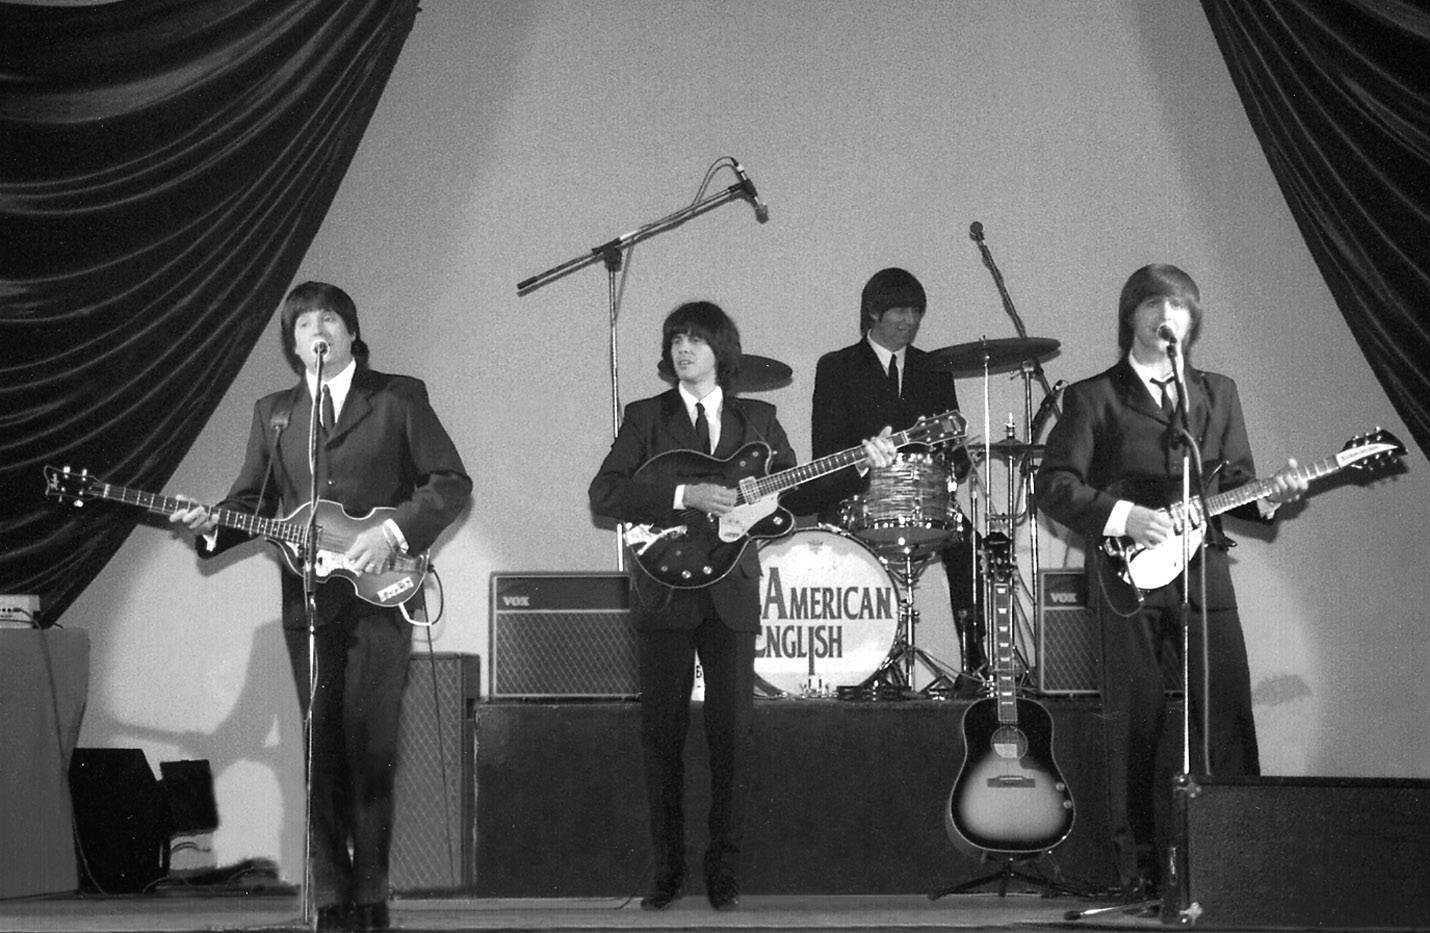 Beatles tribute band American English will play in Palatine this weekend.